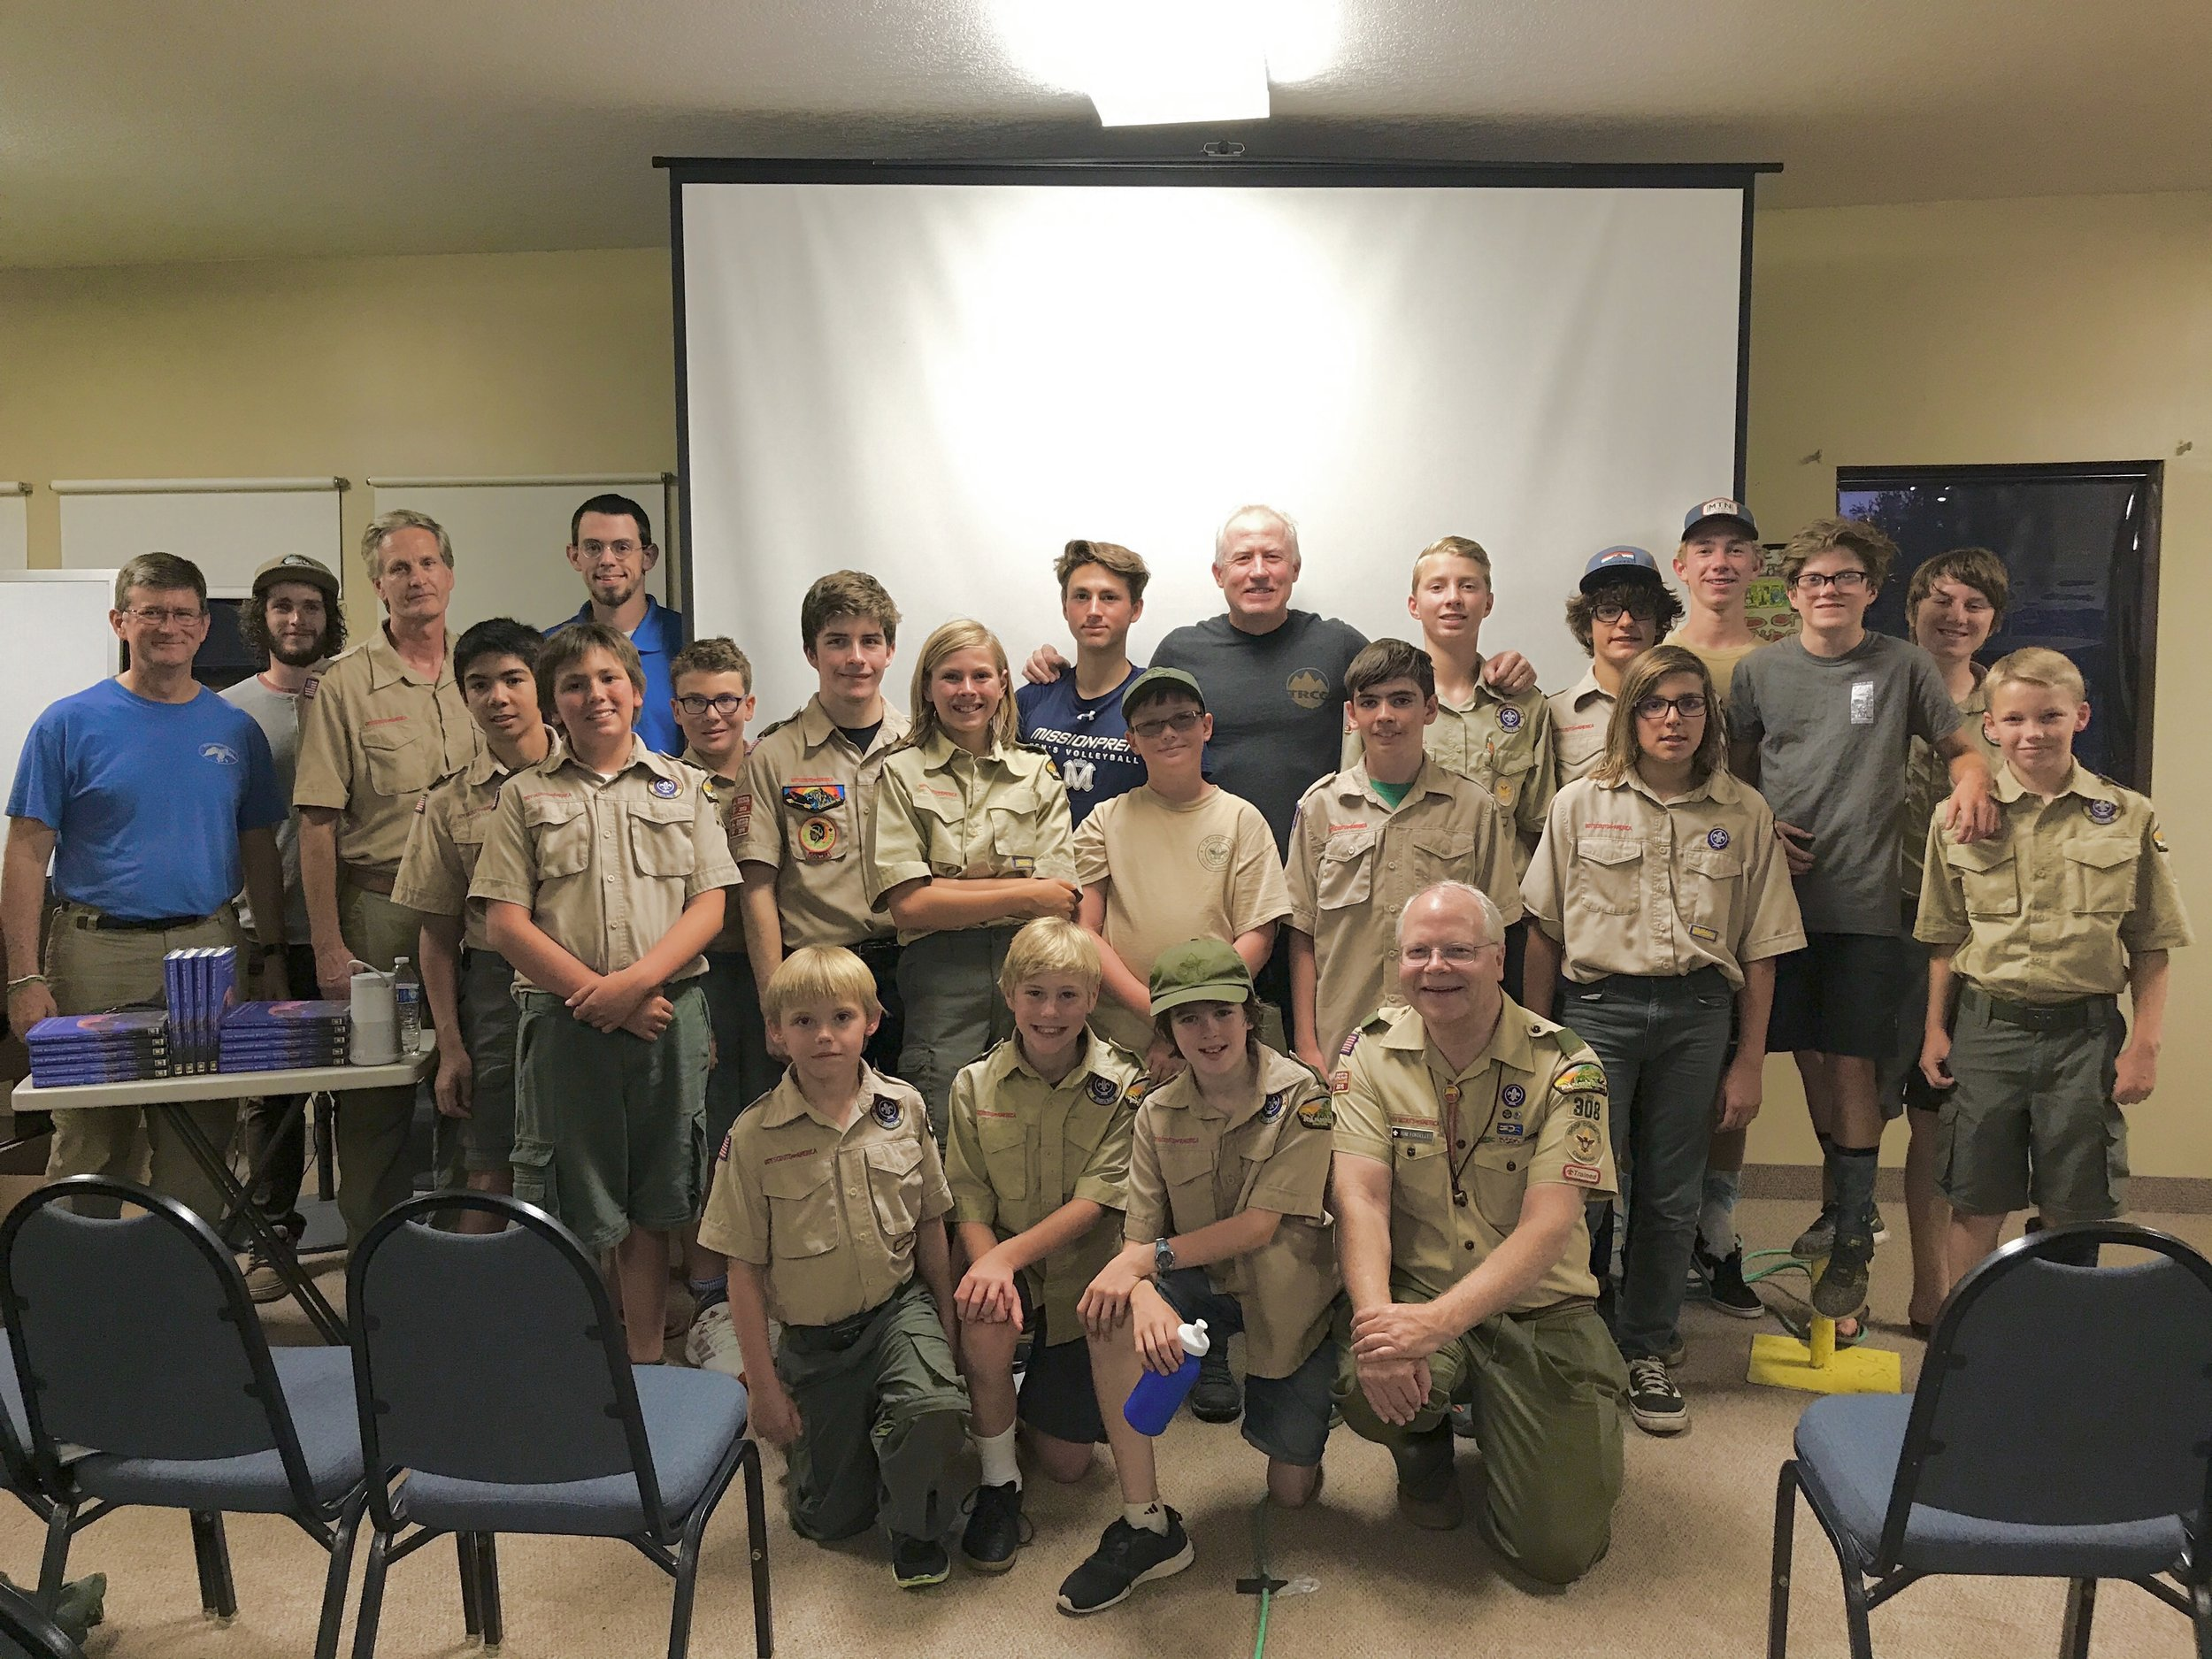 SAR presentation for Boy Scout group